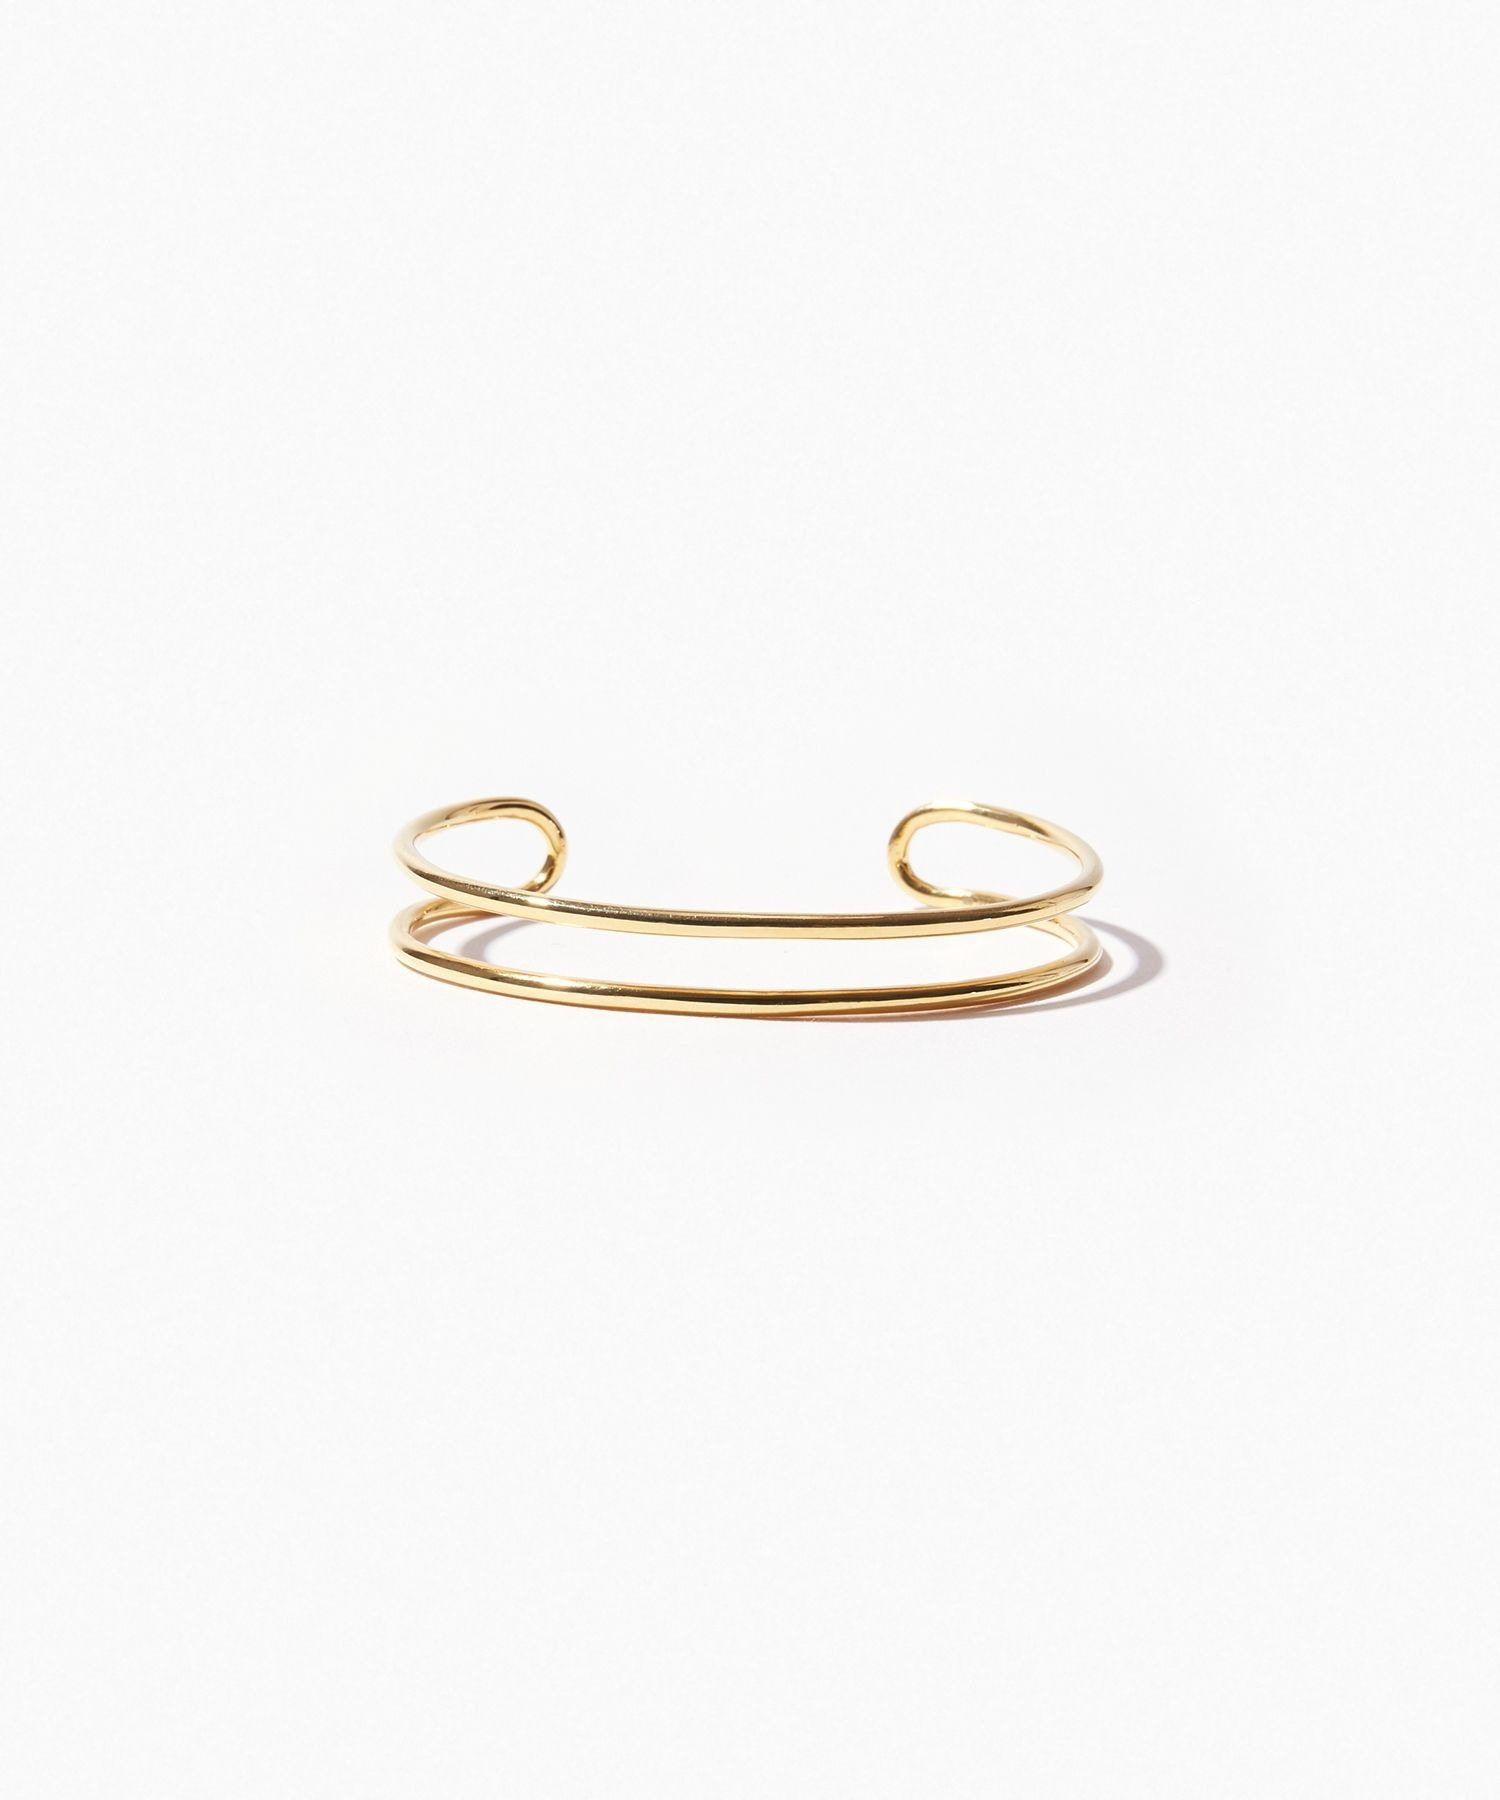 [bone] organic thin double line bangle